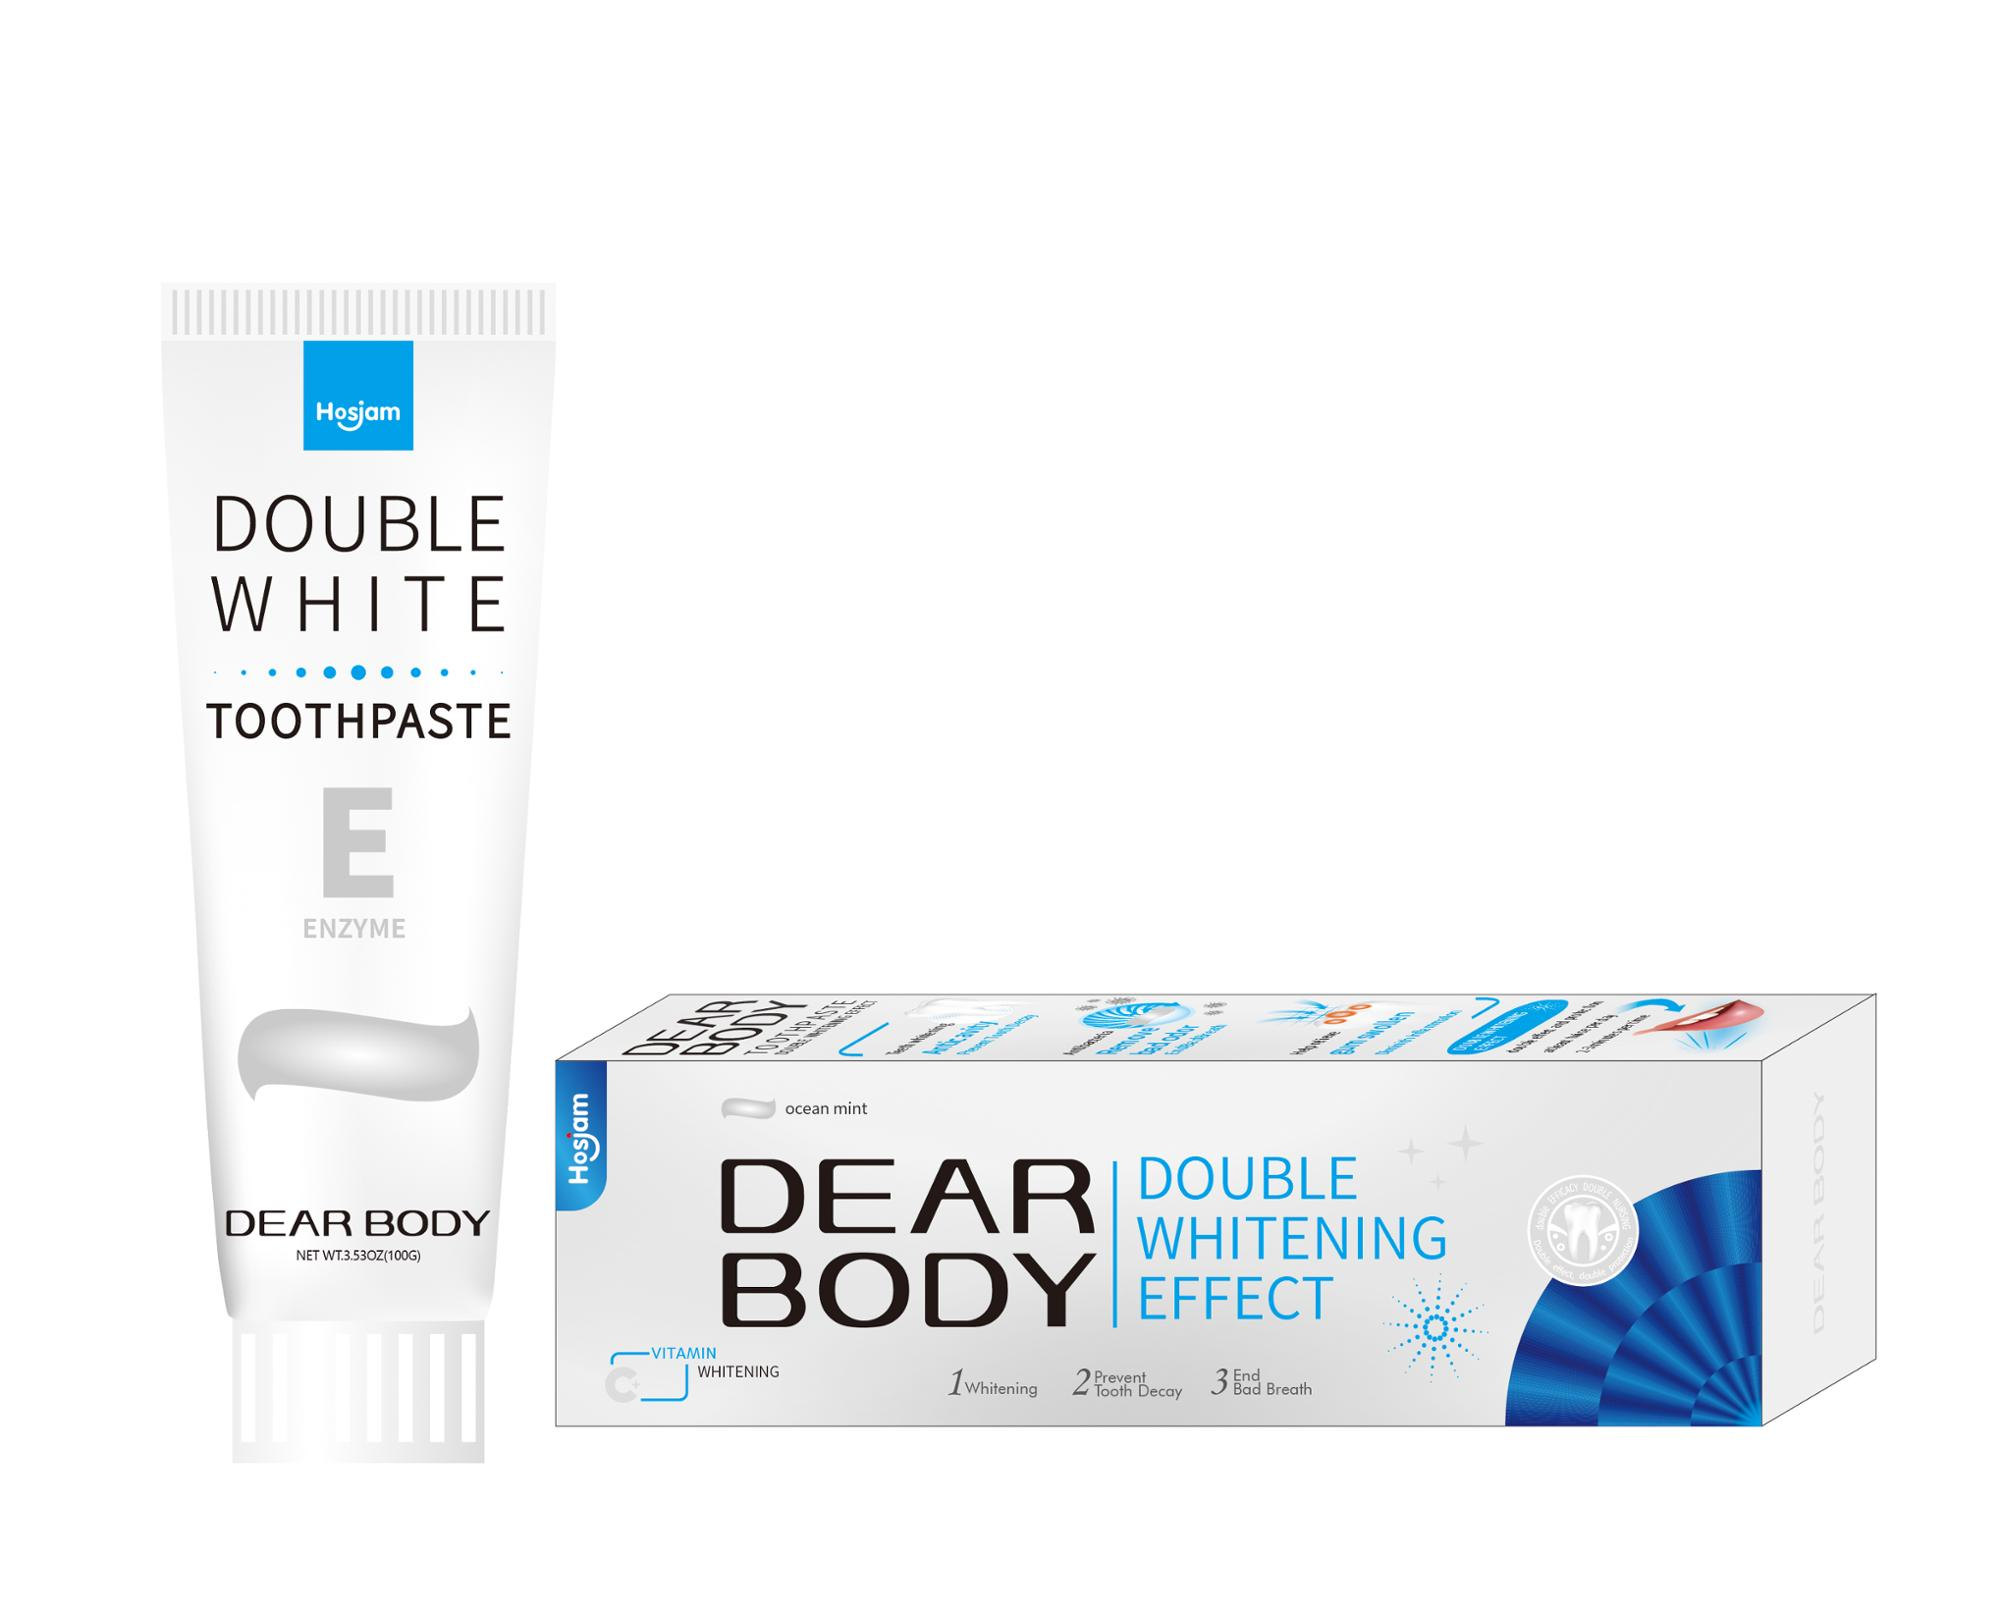 Dear Body Brand Organic private label bamboo charcoal toothpaste